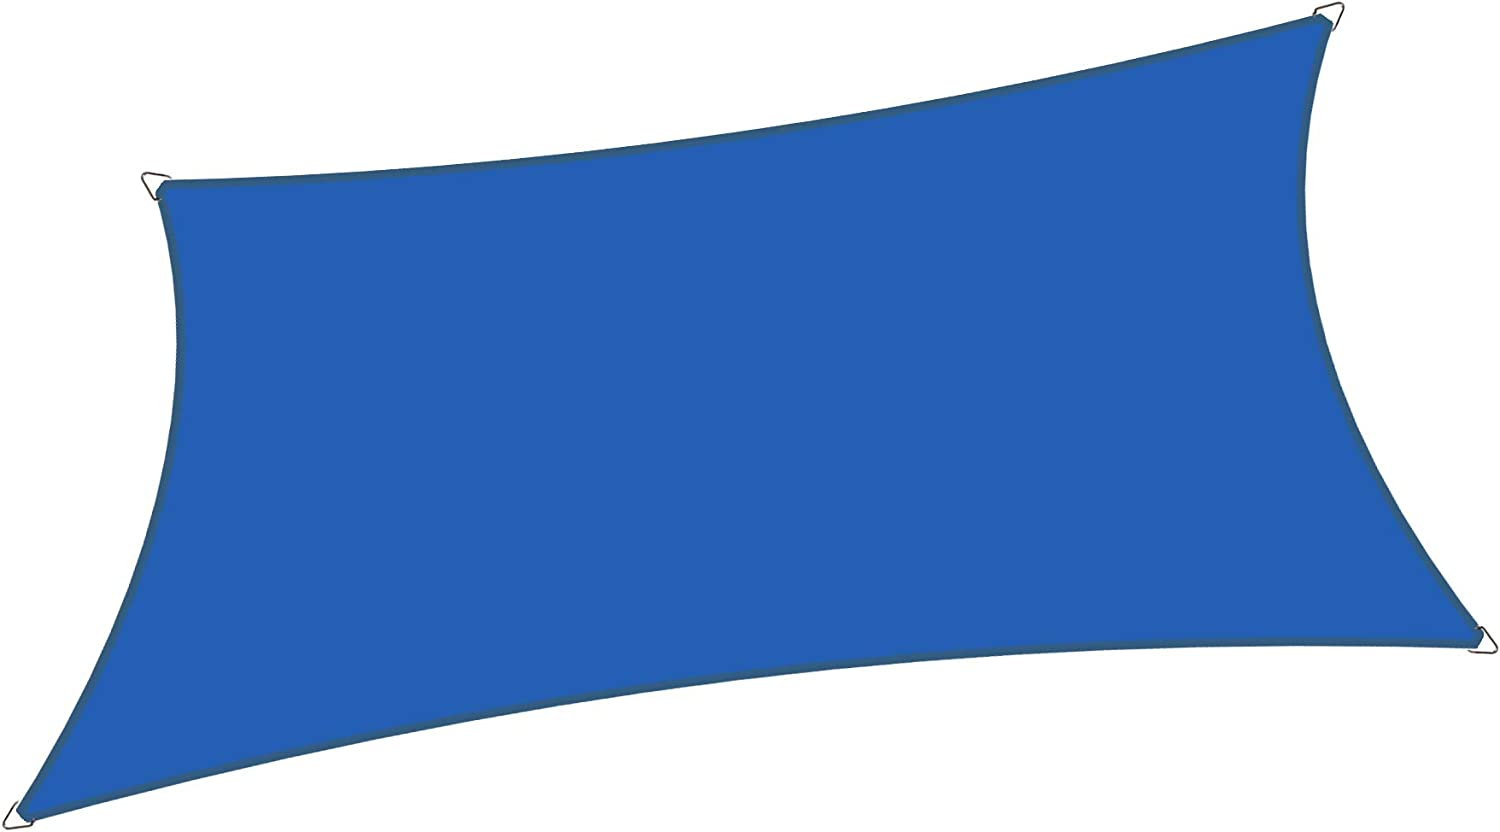 Alion Home 8' x 12' Waterproof Woven Sun Shade Sail in Vibrant Colors (8 ft x 12 ft Retangle) (Royal Blue)